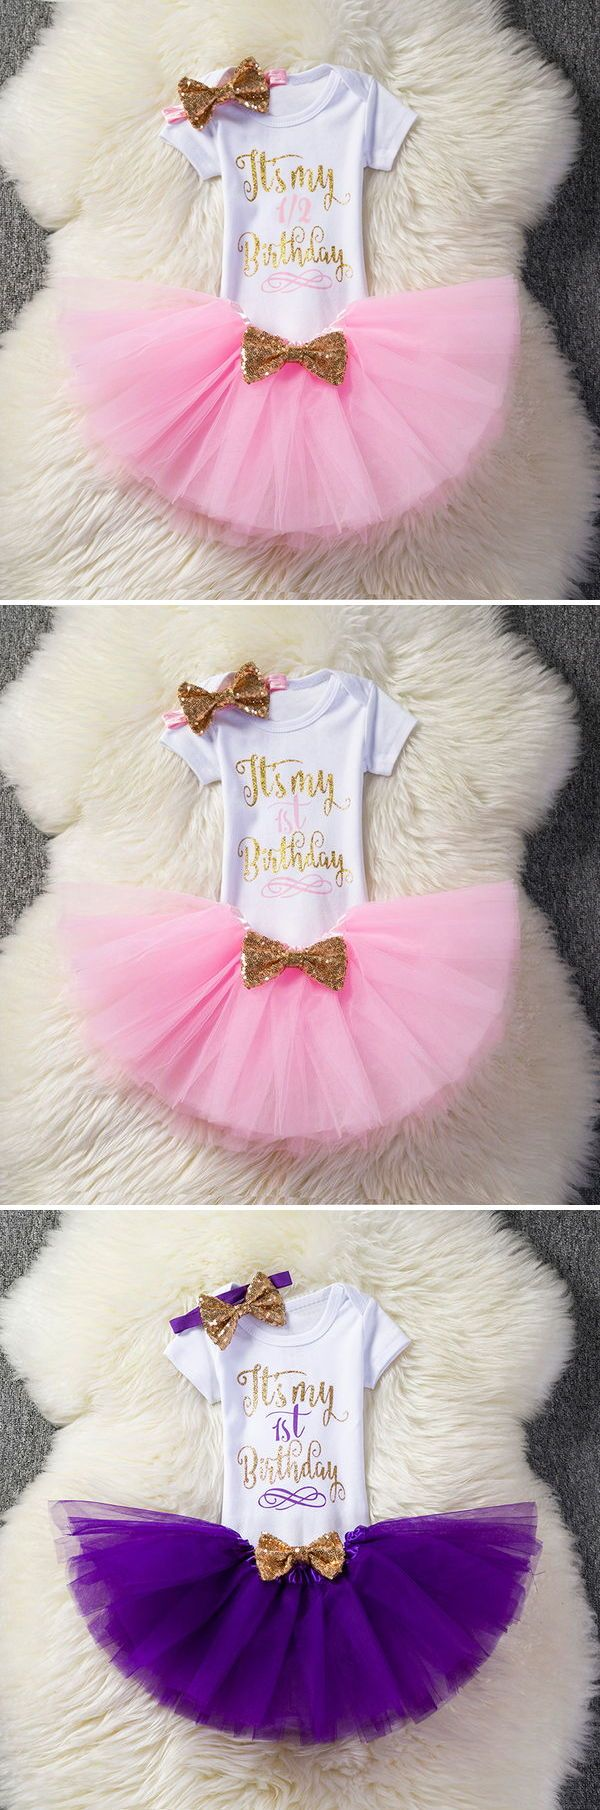 3cc488064 First 1st Birthday Outfits Baby Baptism Clothes Girl Party Wear Kids  Clothing 2 Years Tutu Infant Baby Girl Christening Suits #boysclothing  #girlsclothing